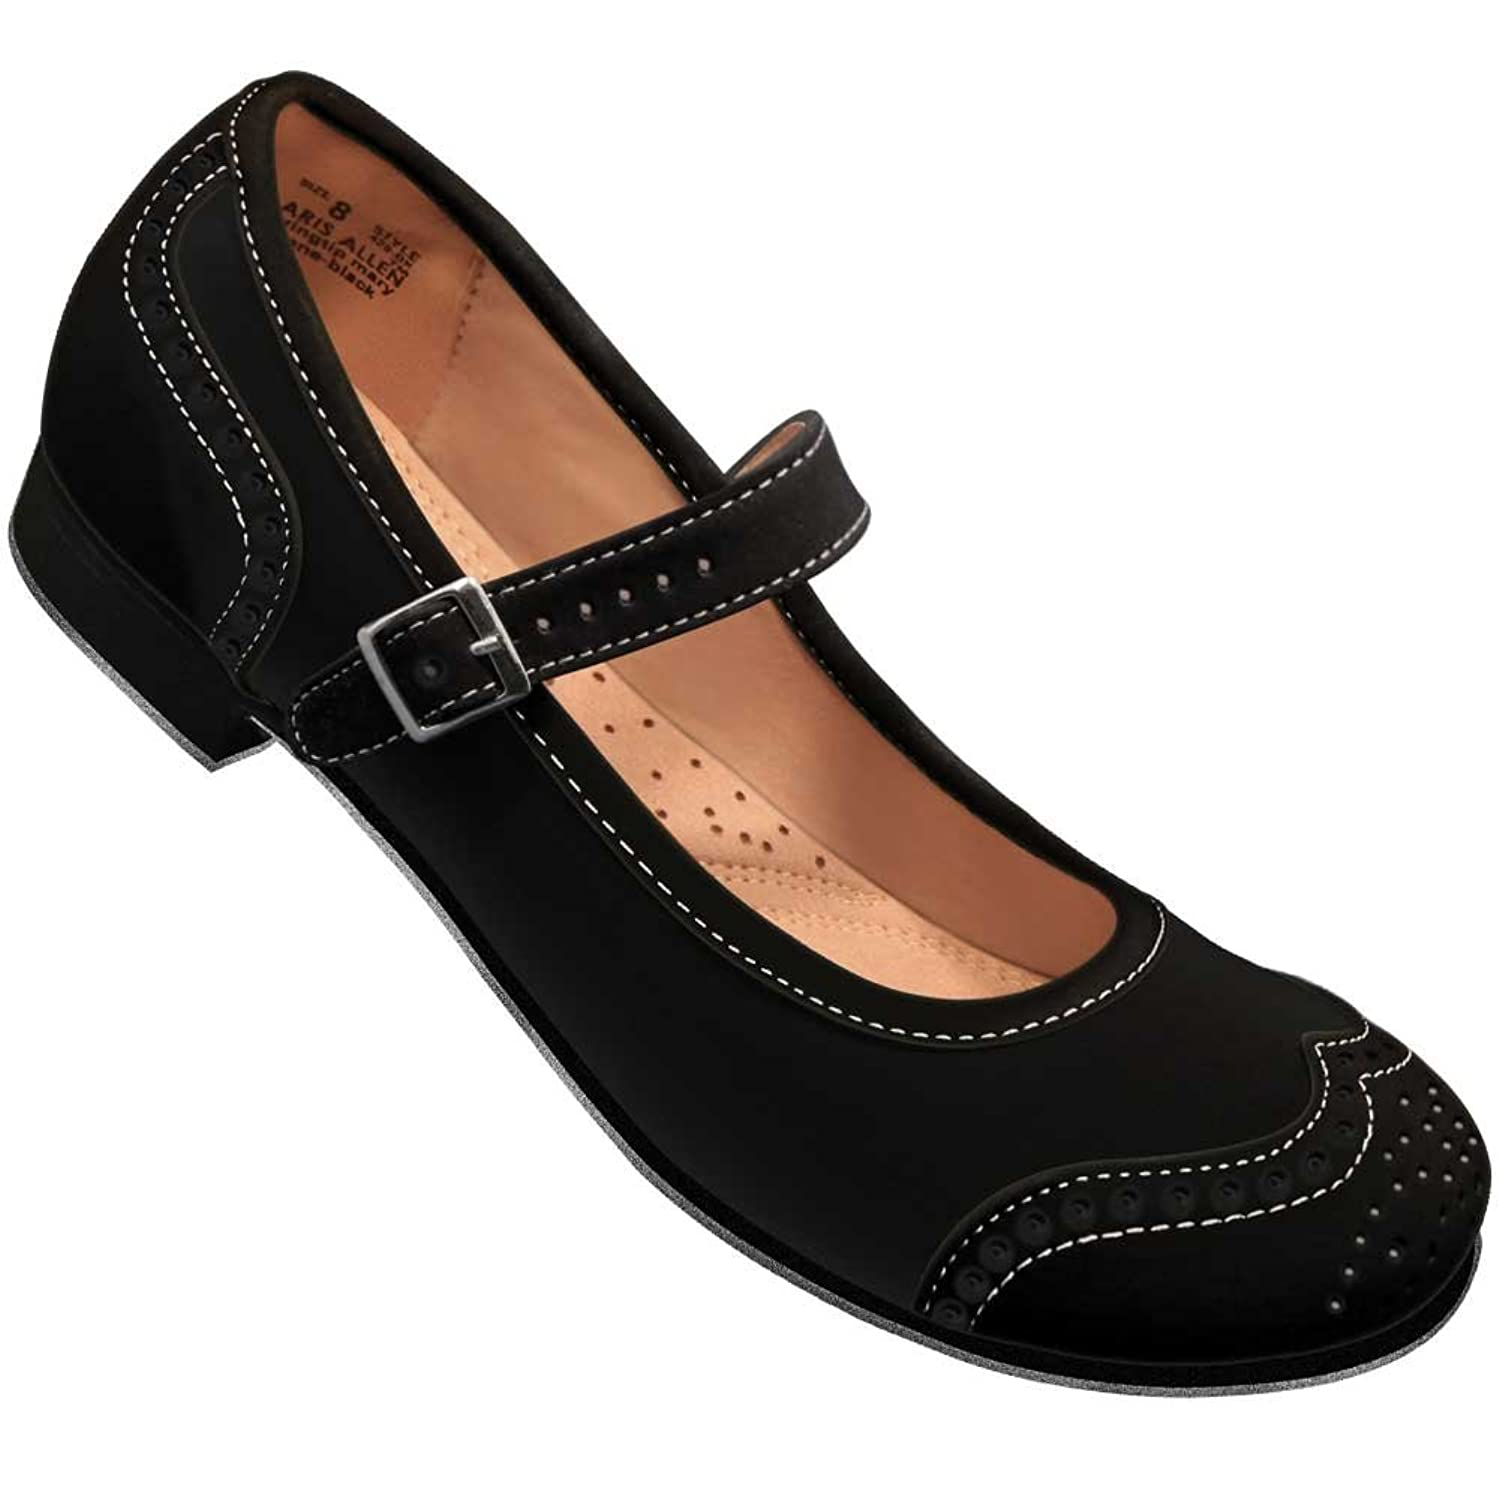 Vintage Style Shoes, Vintage Inspired Shoes Aris Allen Black Snub Toe Mary Jane Wingtips $48.95 AT vintagedancer.com